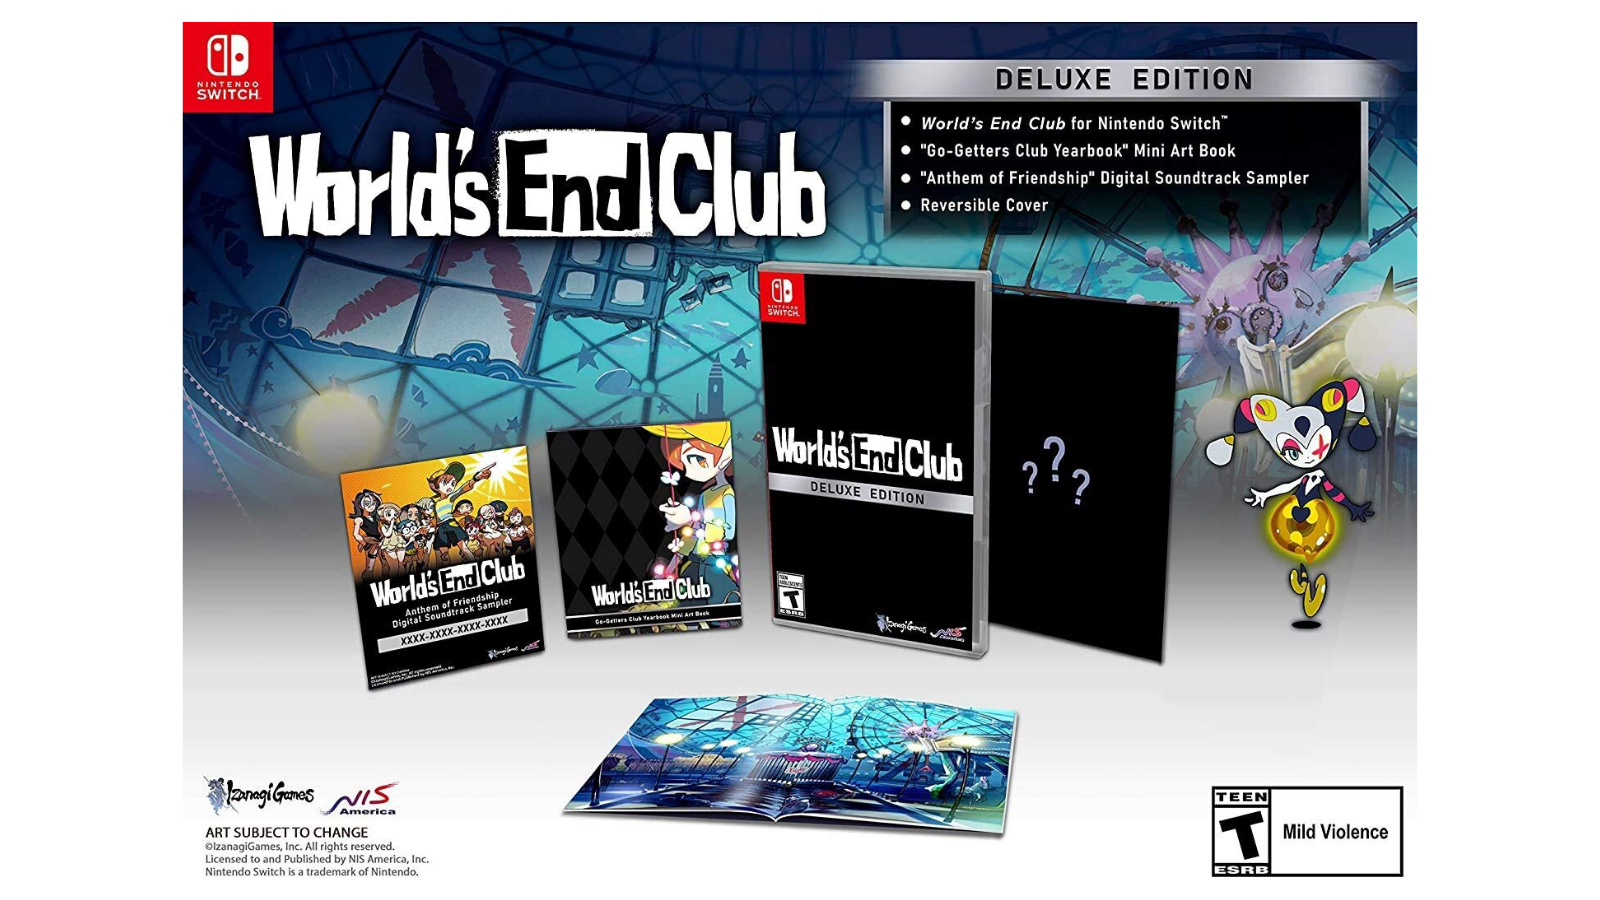 World's End Club: Deluxe Edition